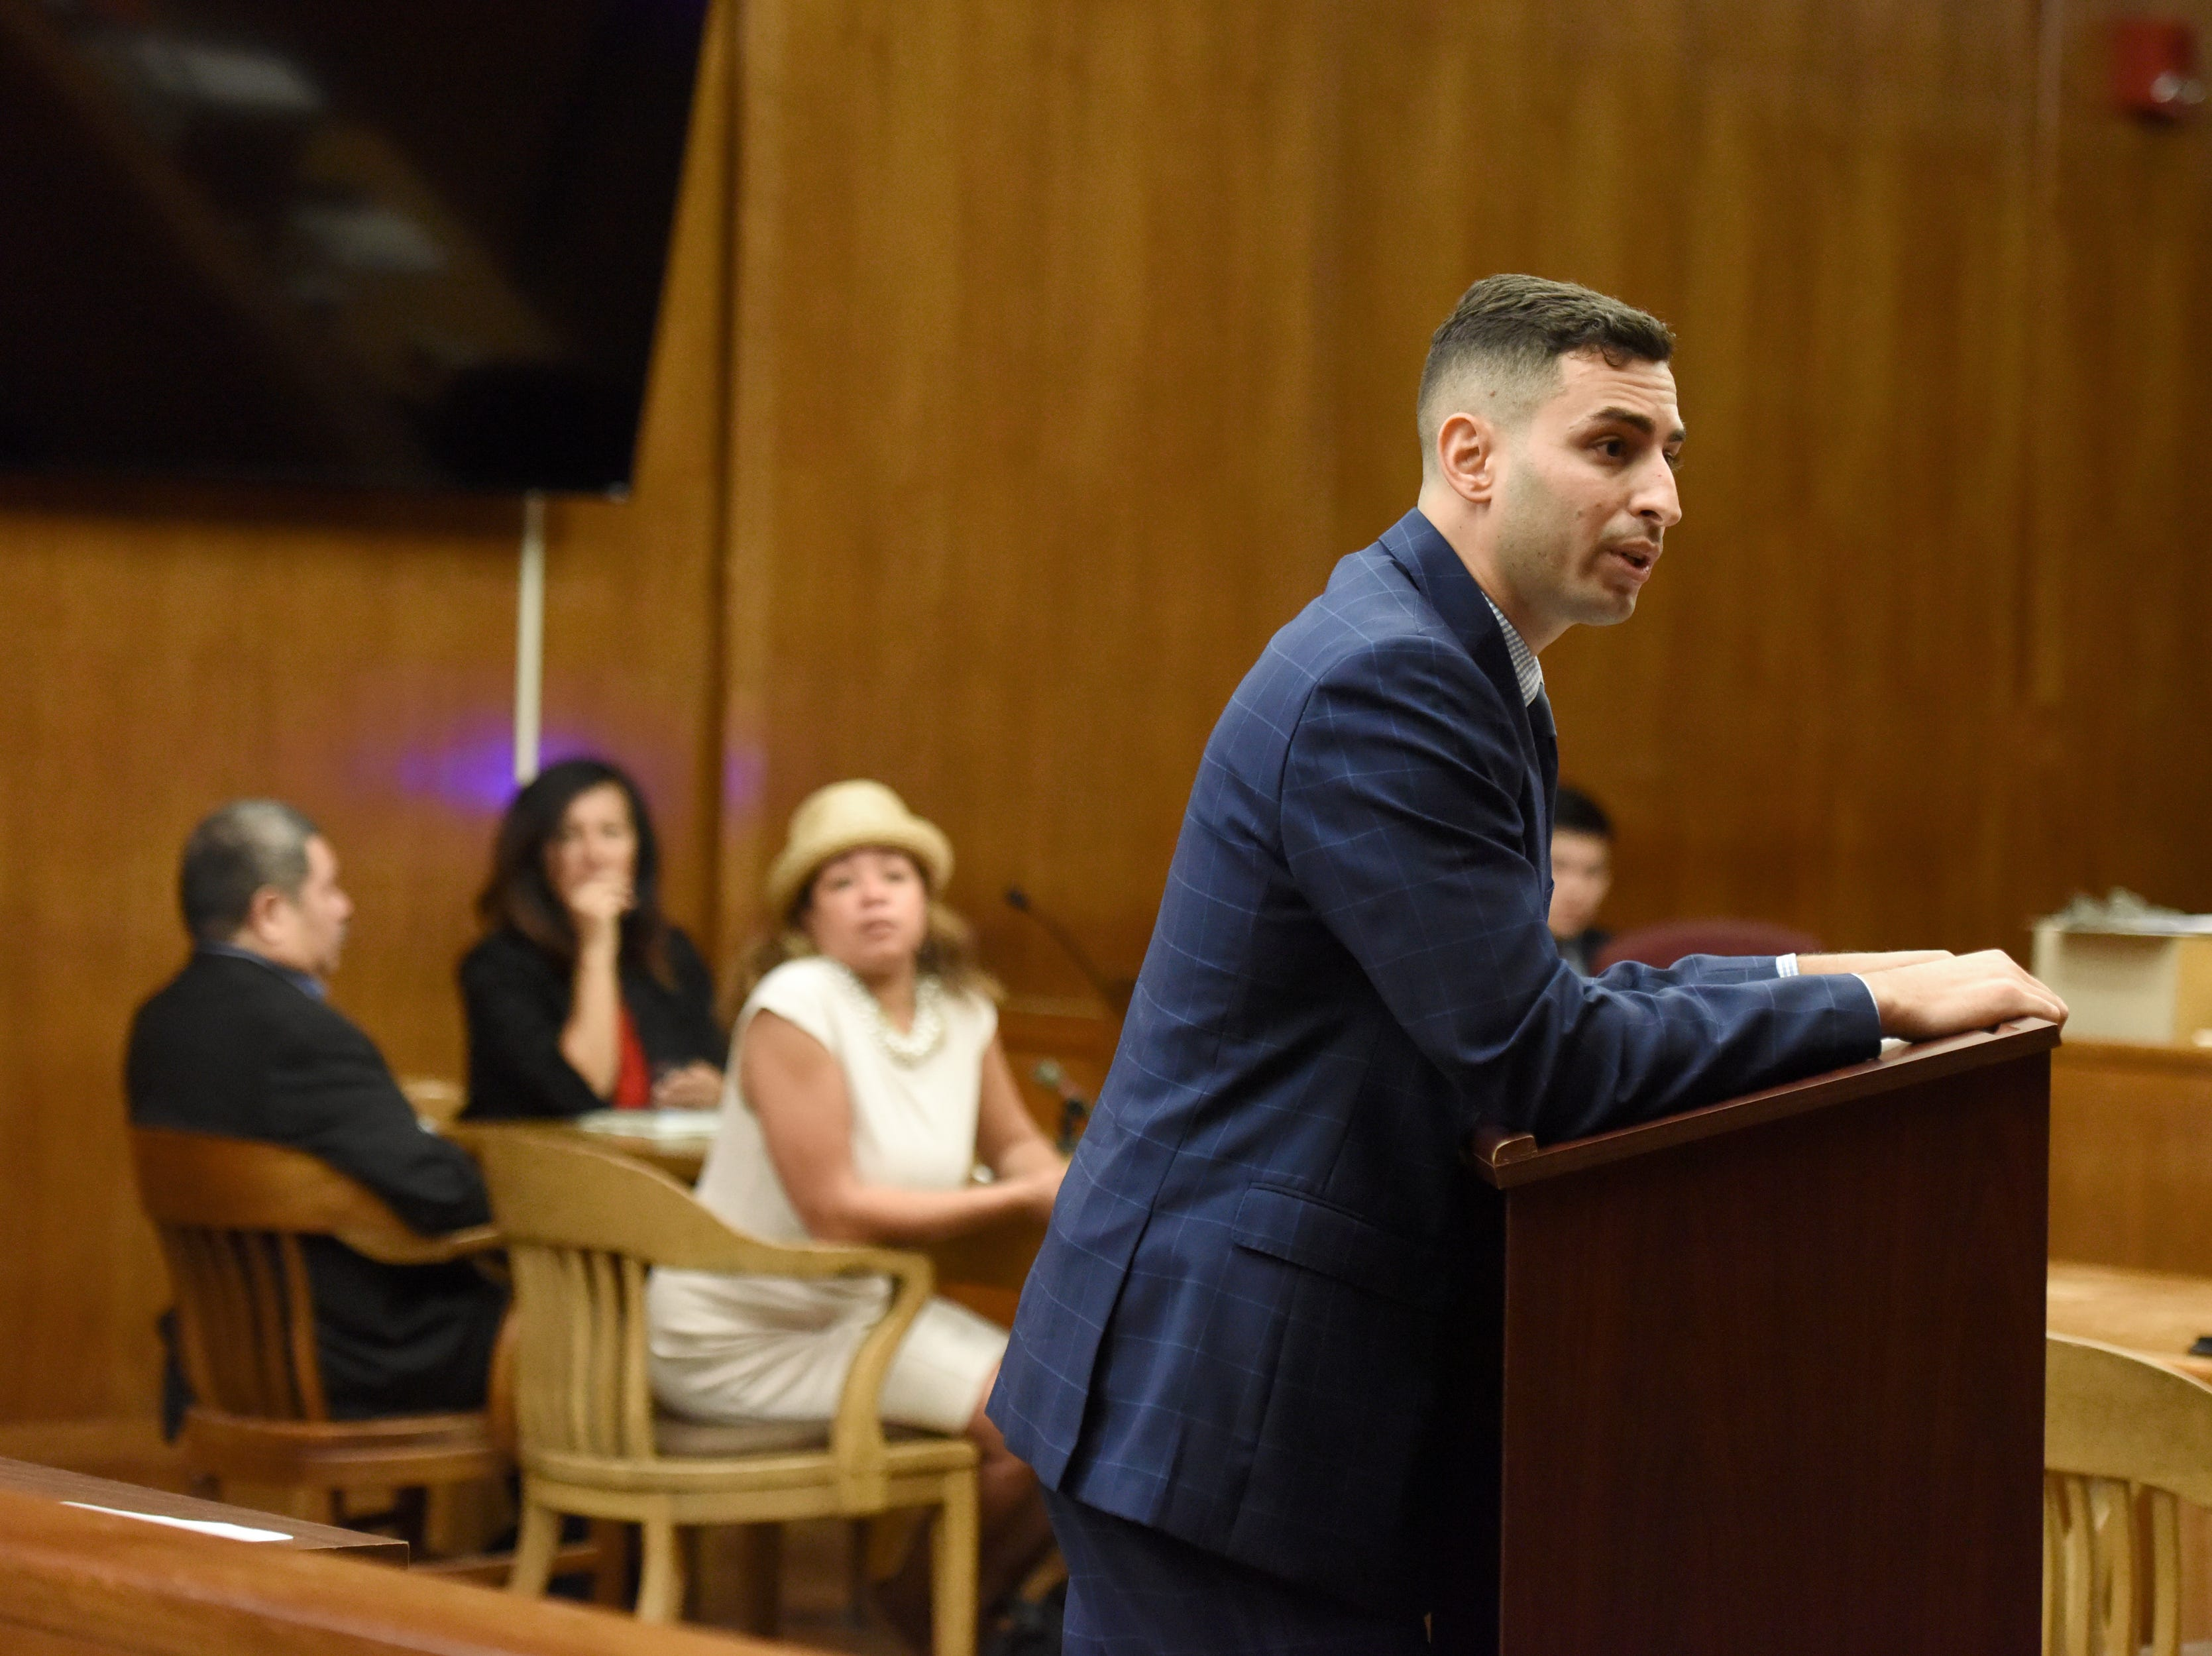 Alfredo Rosales, 53, of Englewood is on trial for several crimes, including aggravated sexual assault, criminal sexual contact, human trafficking and endangering the welfare of a child. Asst. Bergen County Prosecutor Mark Chiavola delivers his closing arguments in the states case against Alfredo Rosales on September 18, 2018.